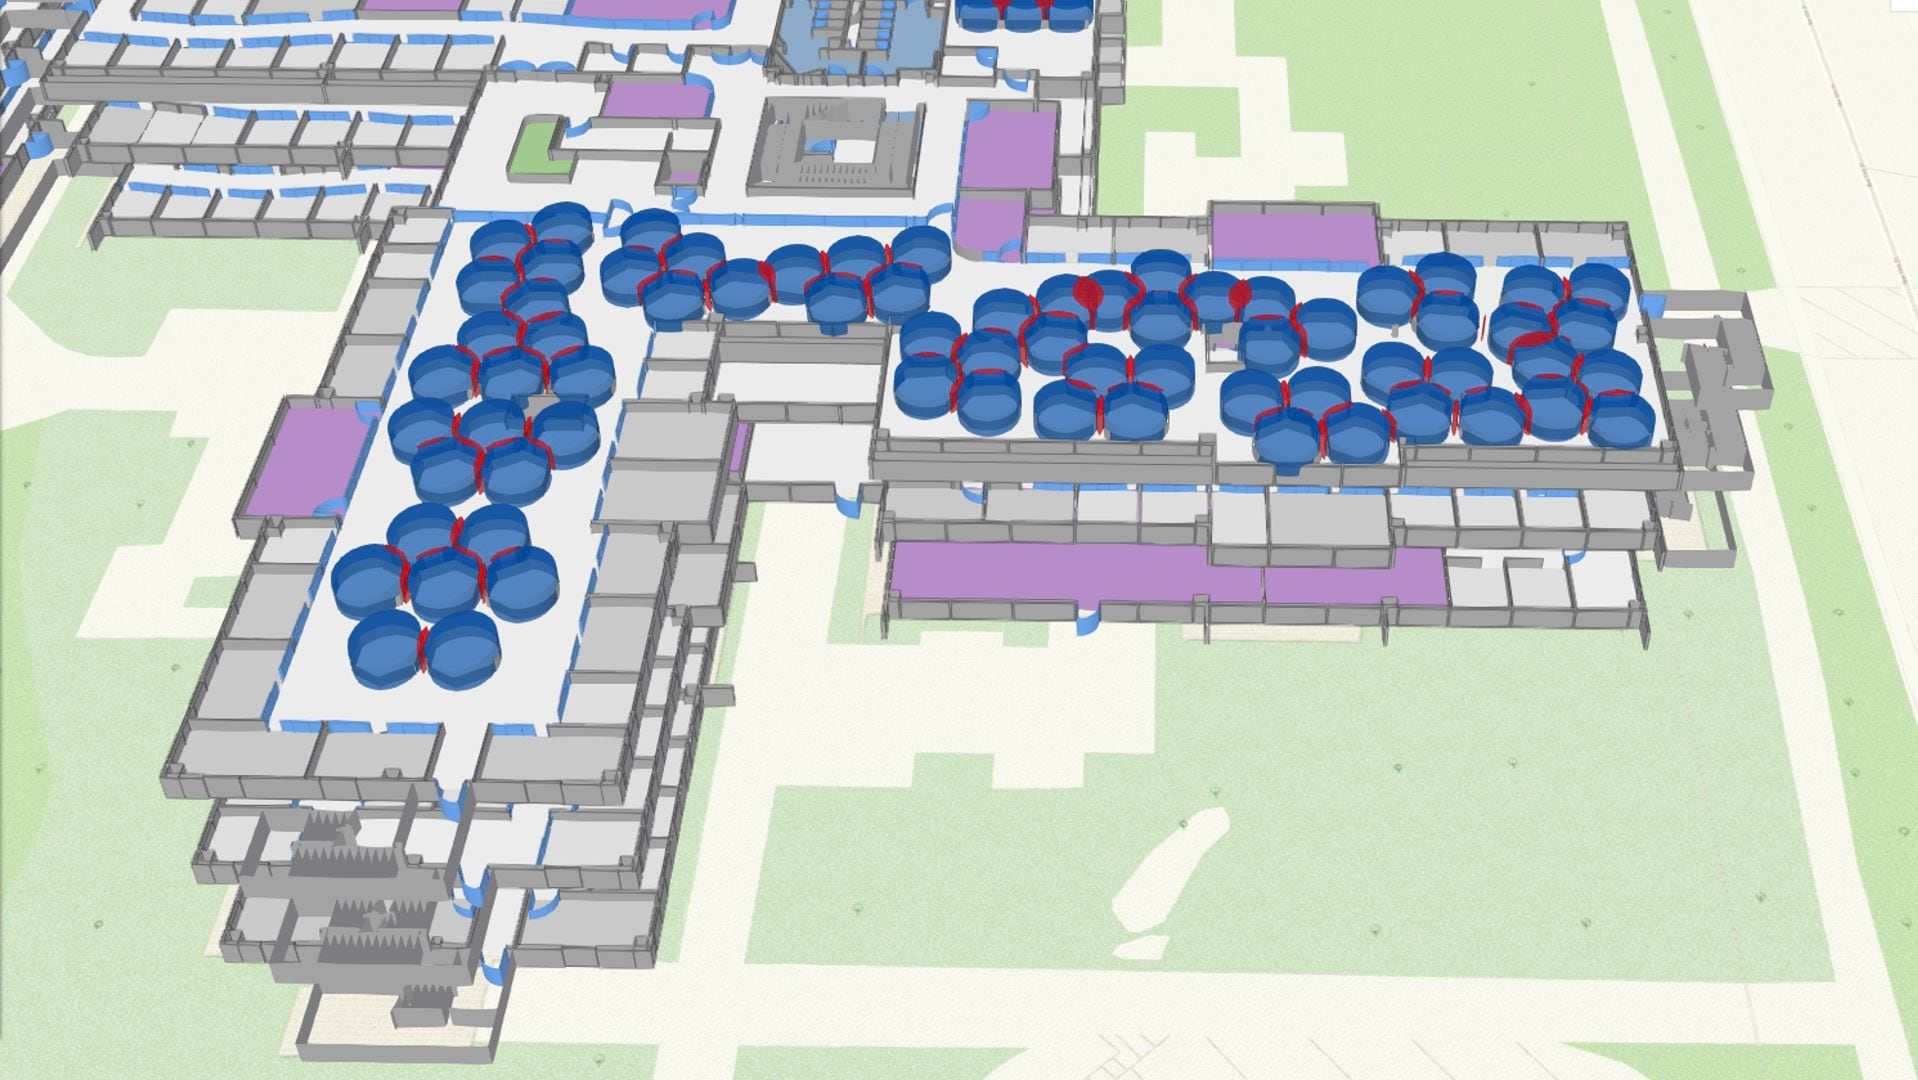 3D indoor map showing social distance analysis of open office space types